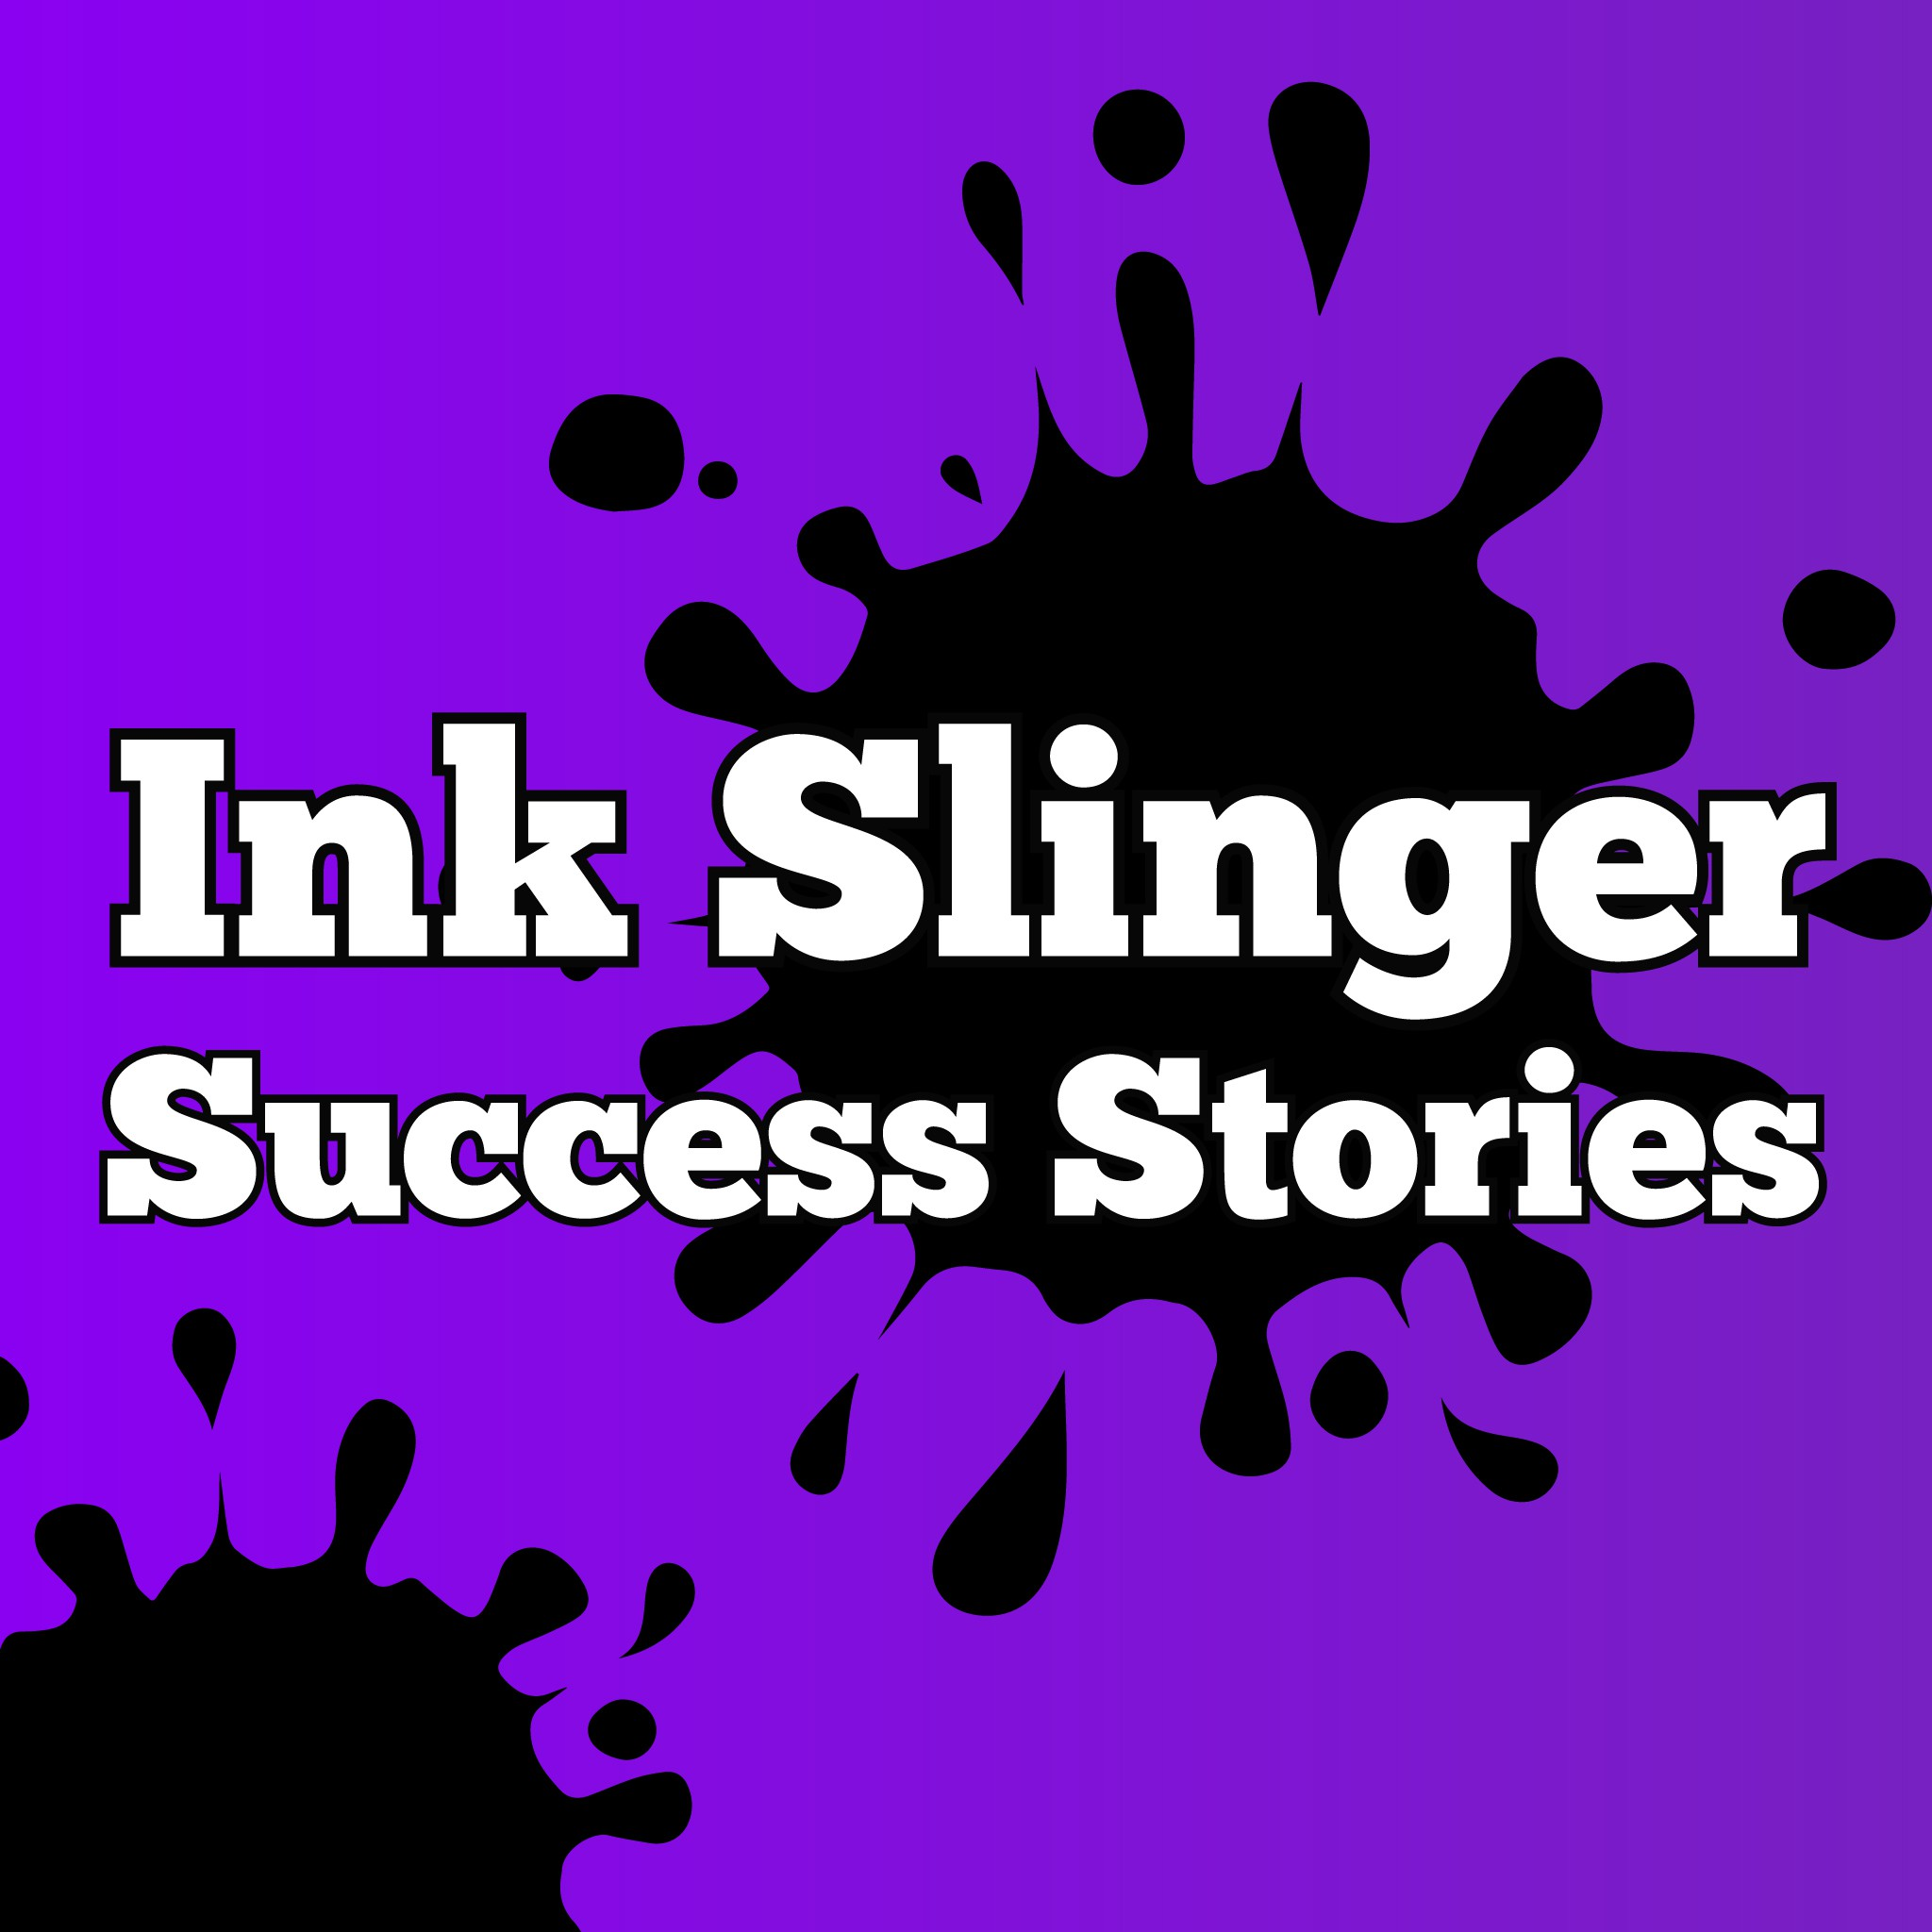 A fun, inky logo and facebook cover for Ink Slinger Success Stories Podcast